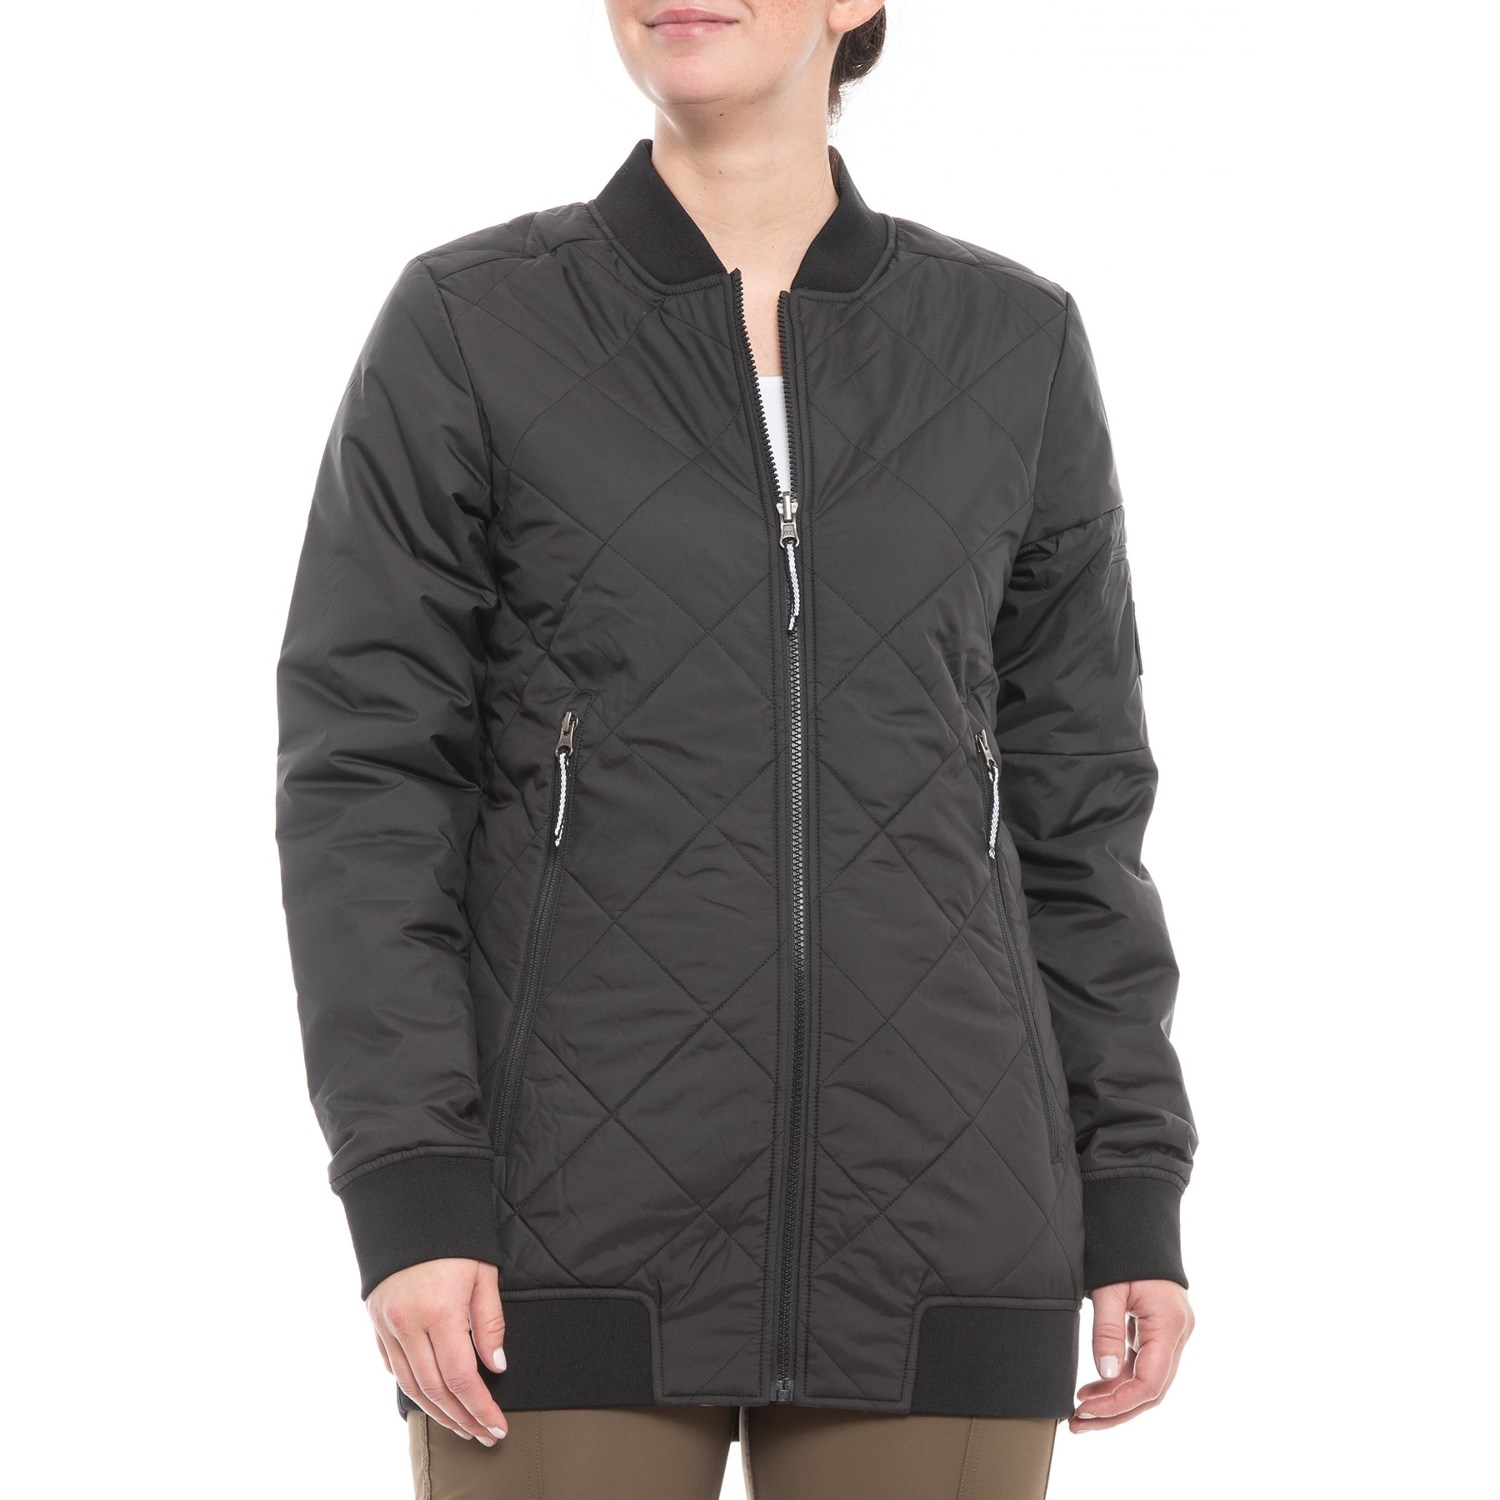 ad3d5627f The North Face Jester Aviator Jacket (For Women)